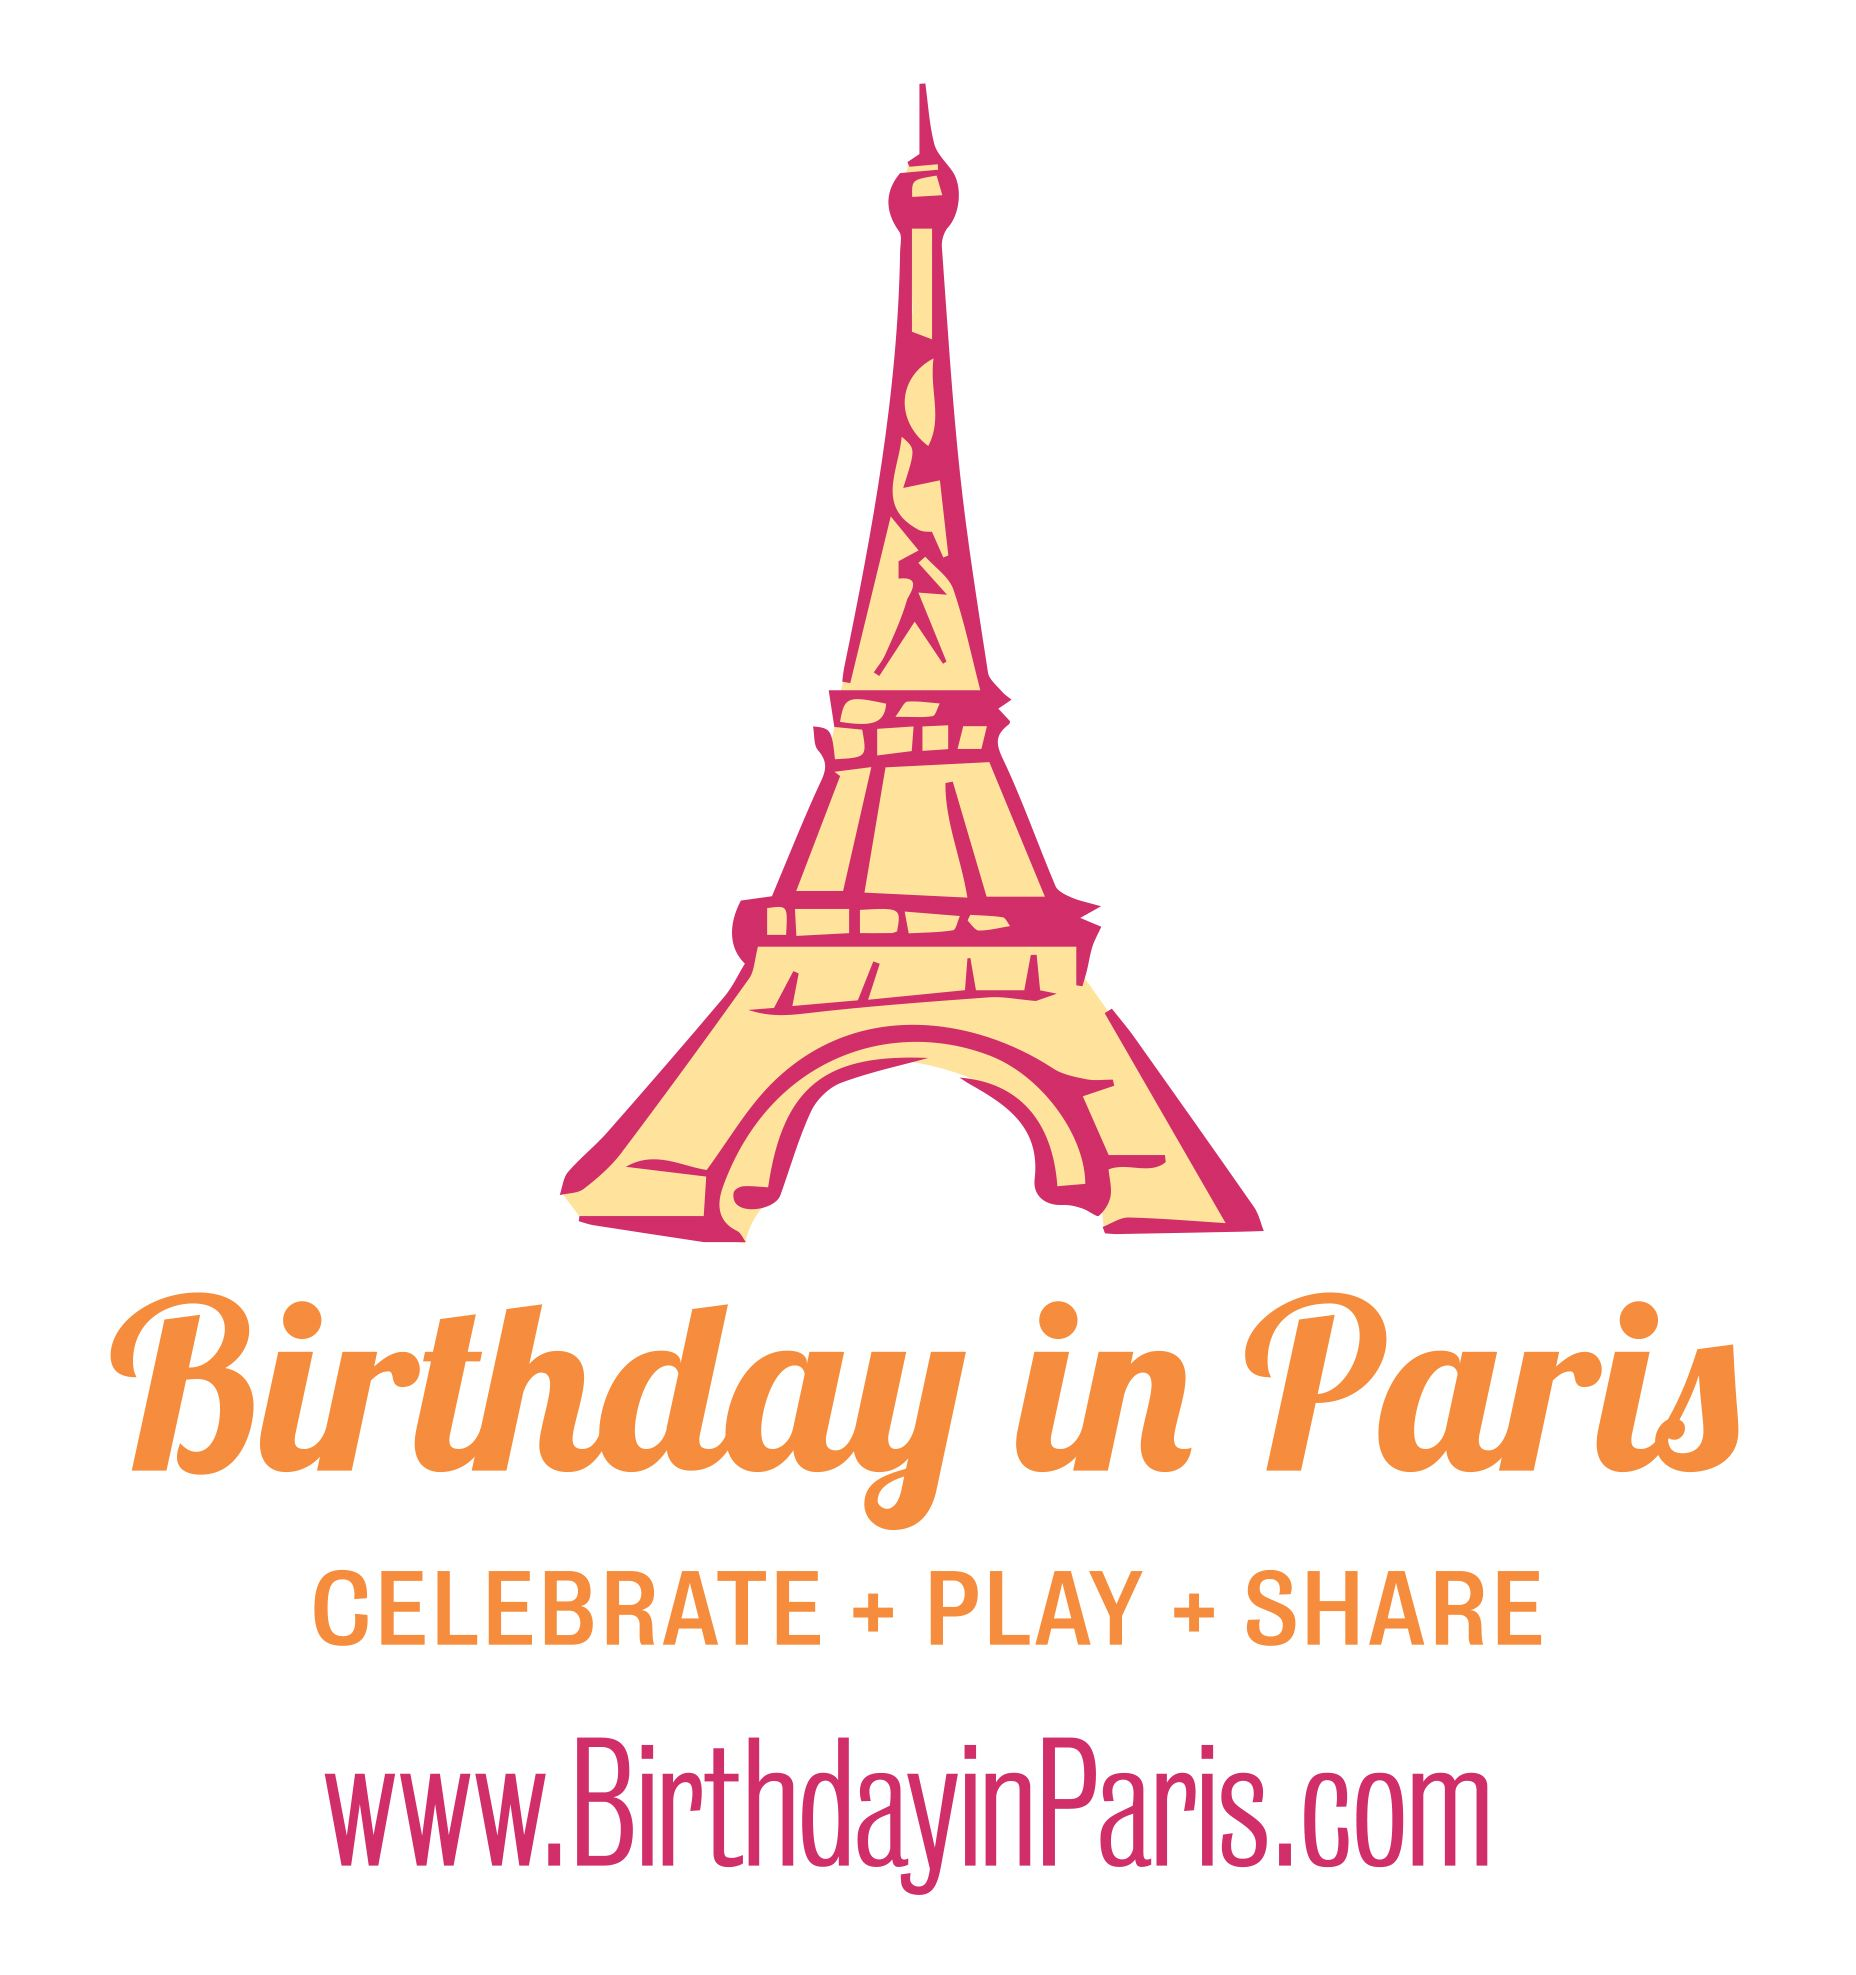 New Birthday in Paris